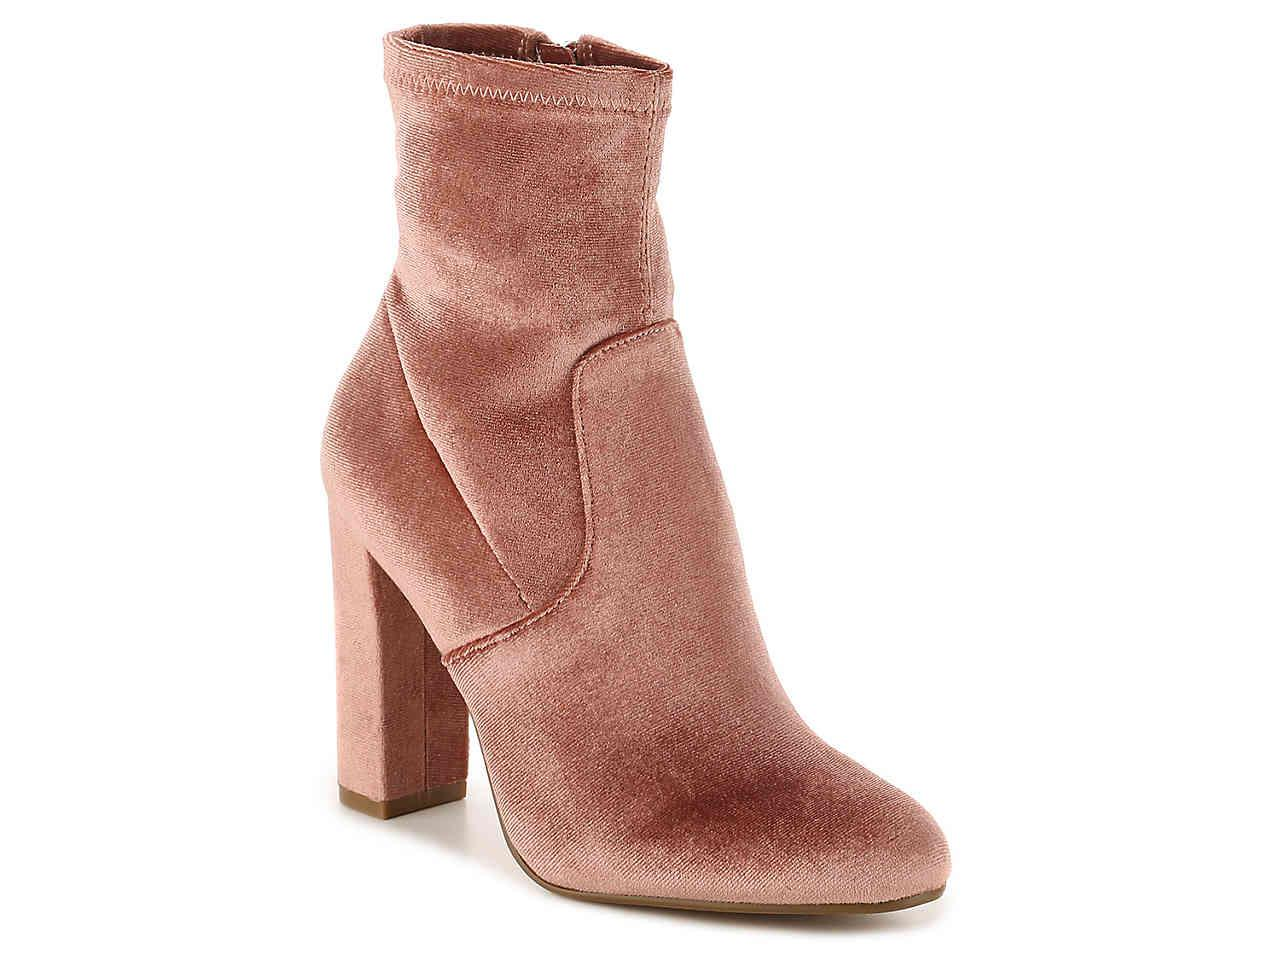 0e8cd0b427d Lyst - Steve Madden Edit Velvet Bootie in Brown